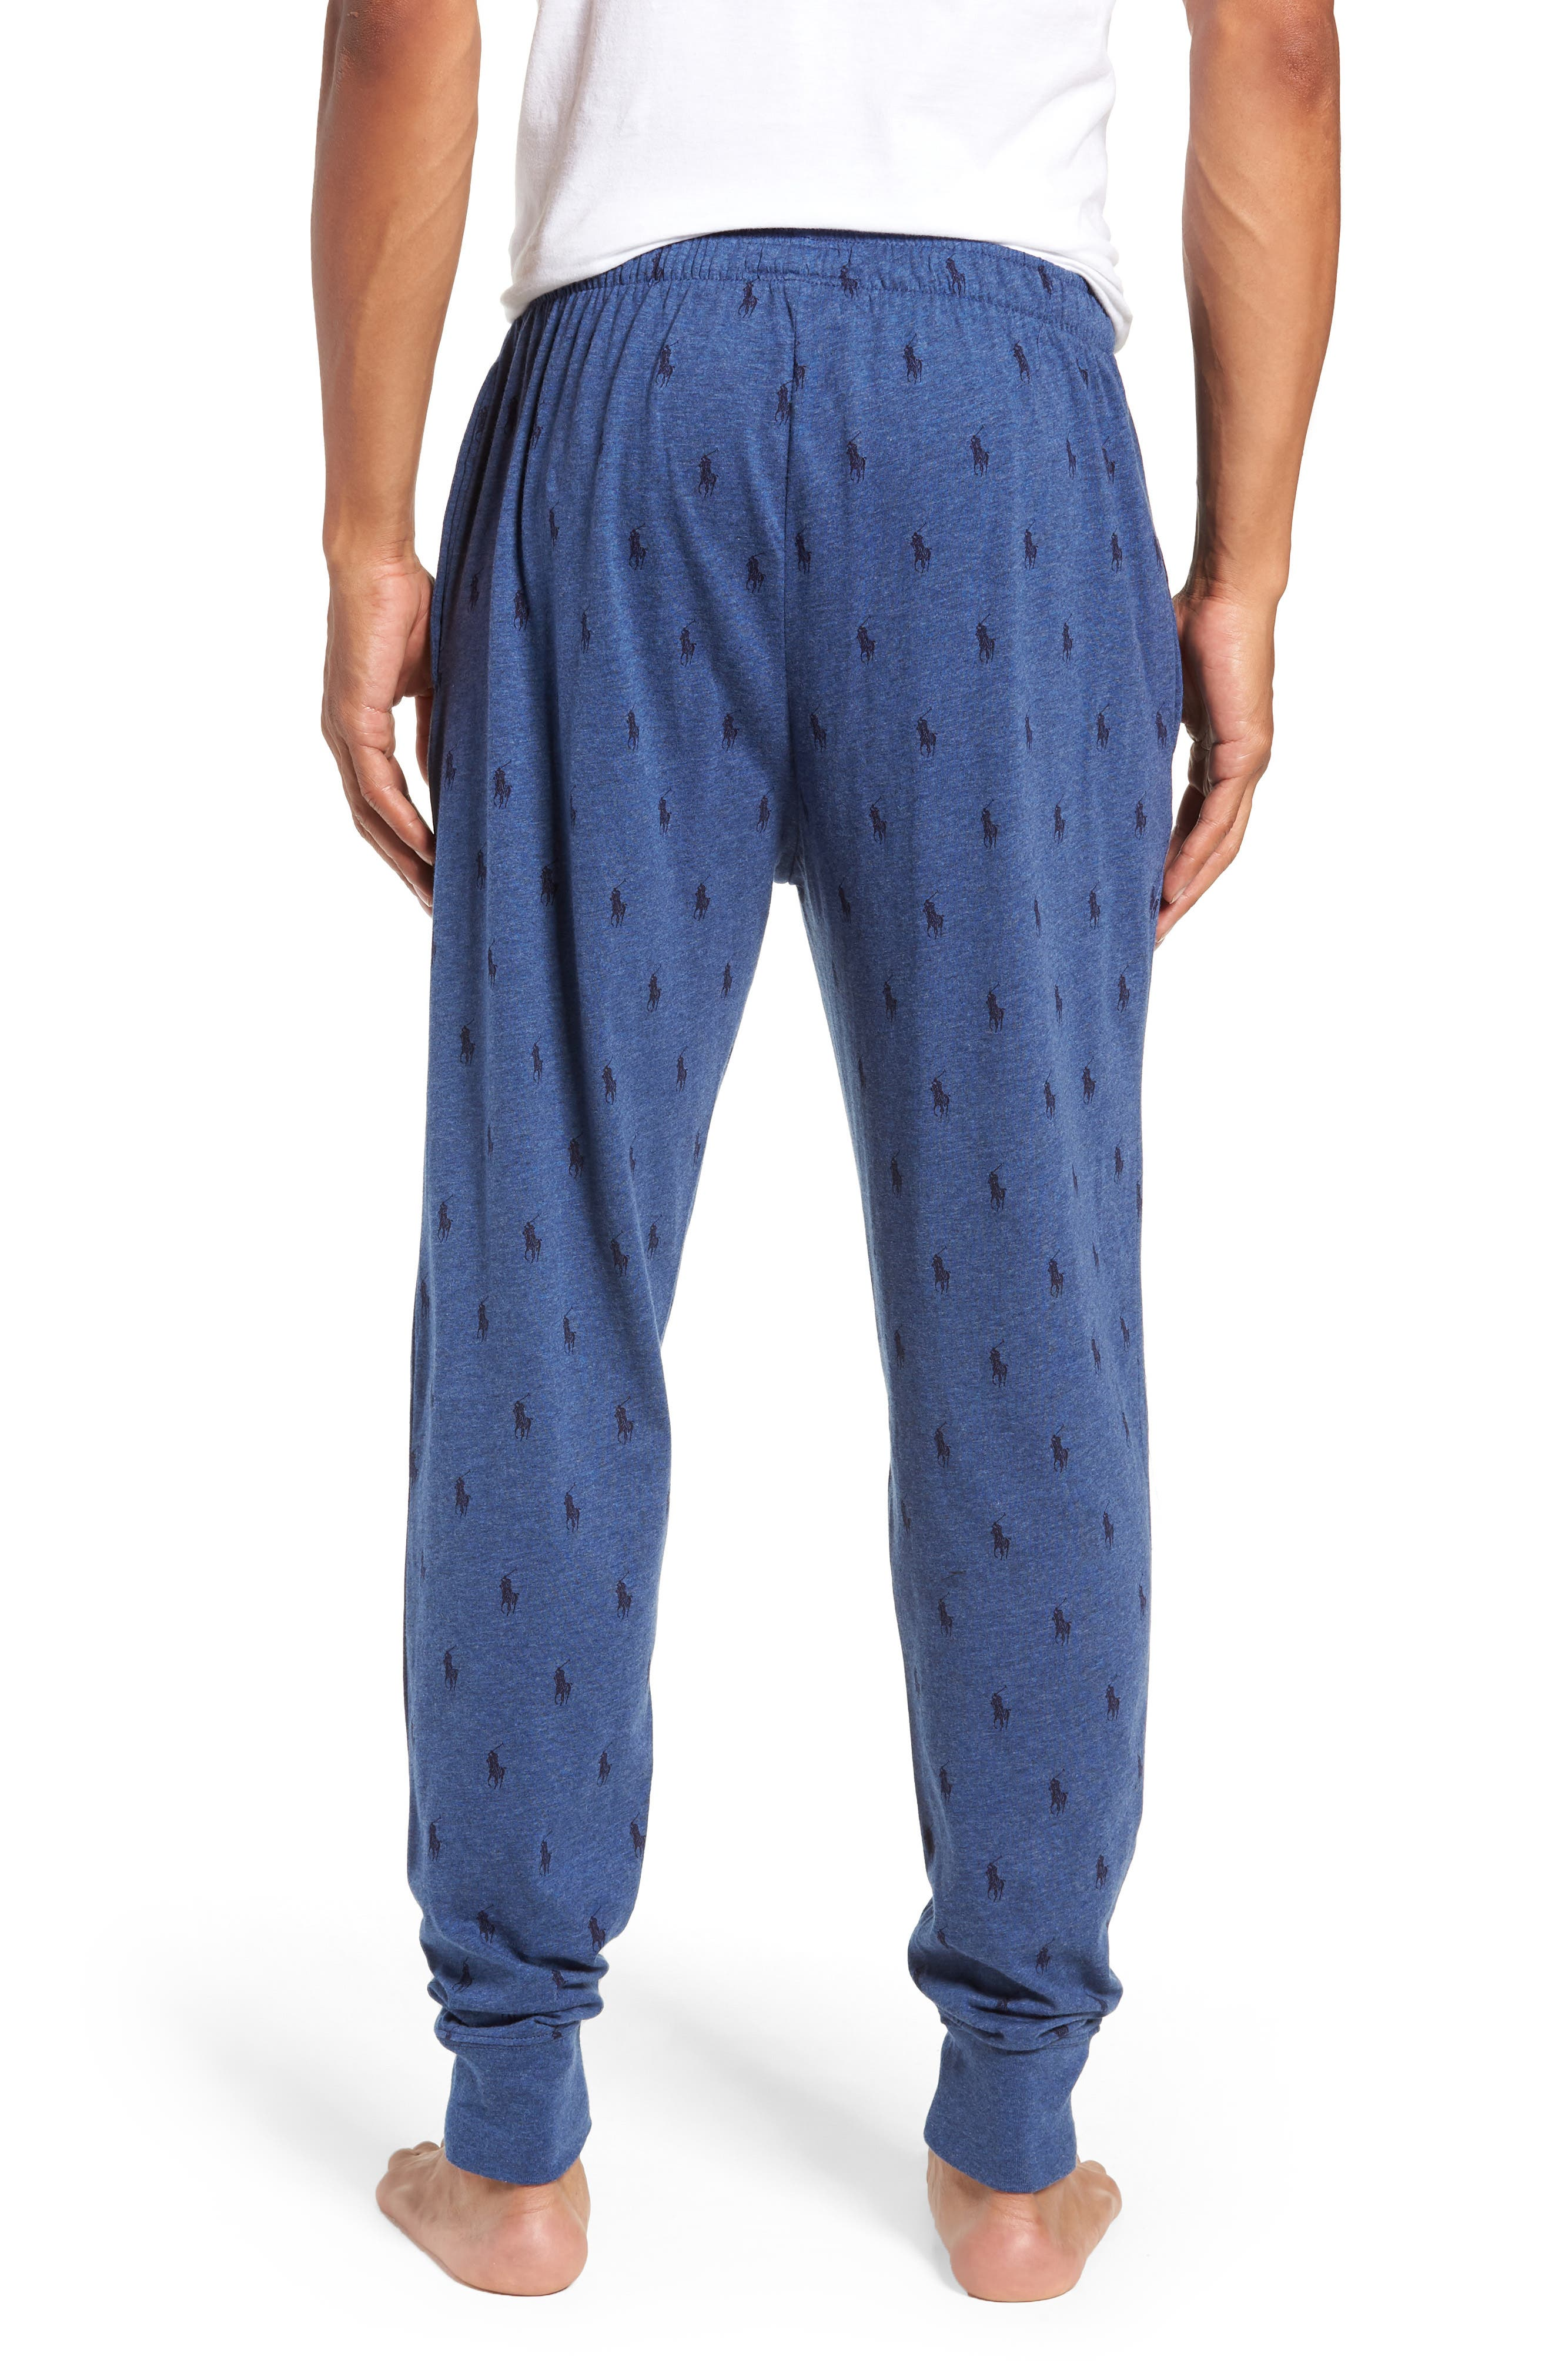 Cotton Pajama Pants,                             Alternate thumbnail 2, color,                             403